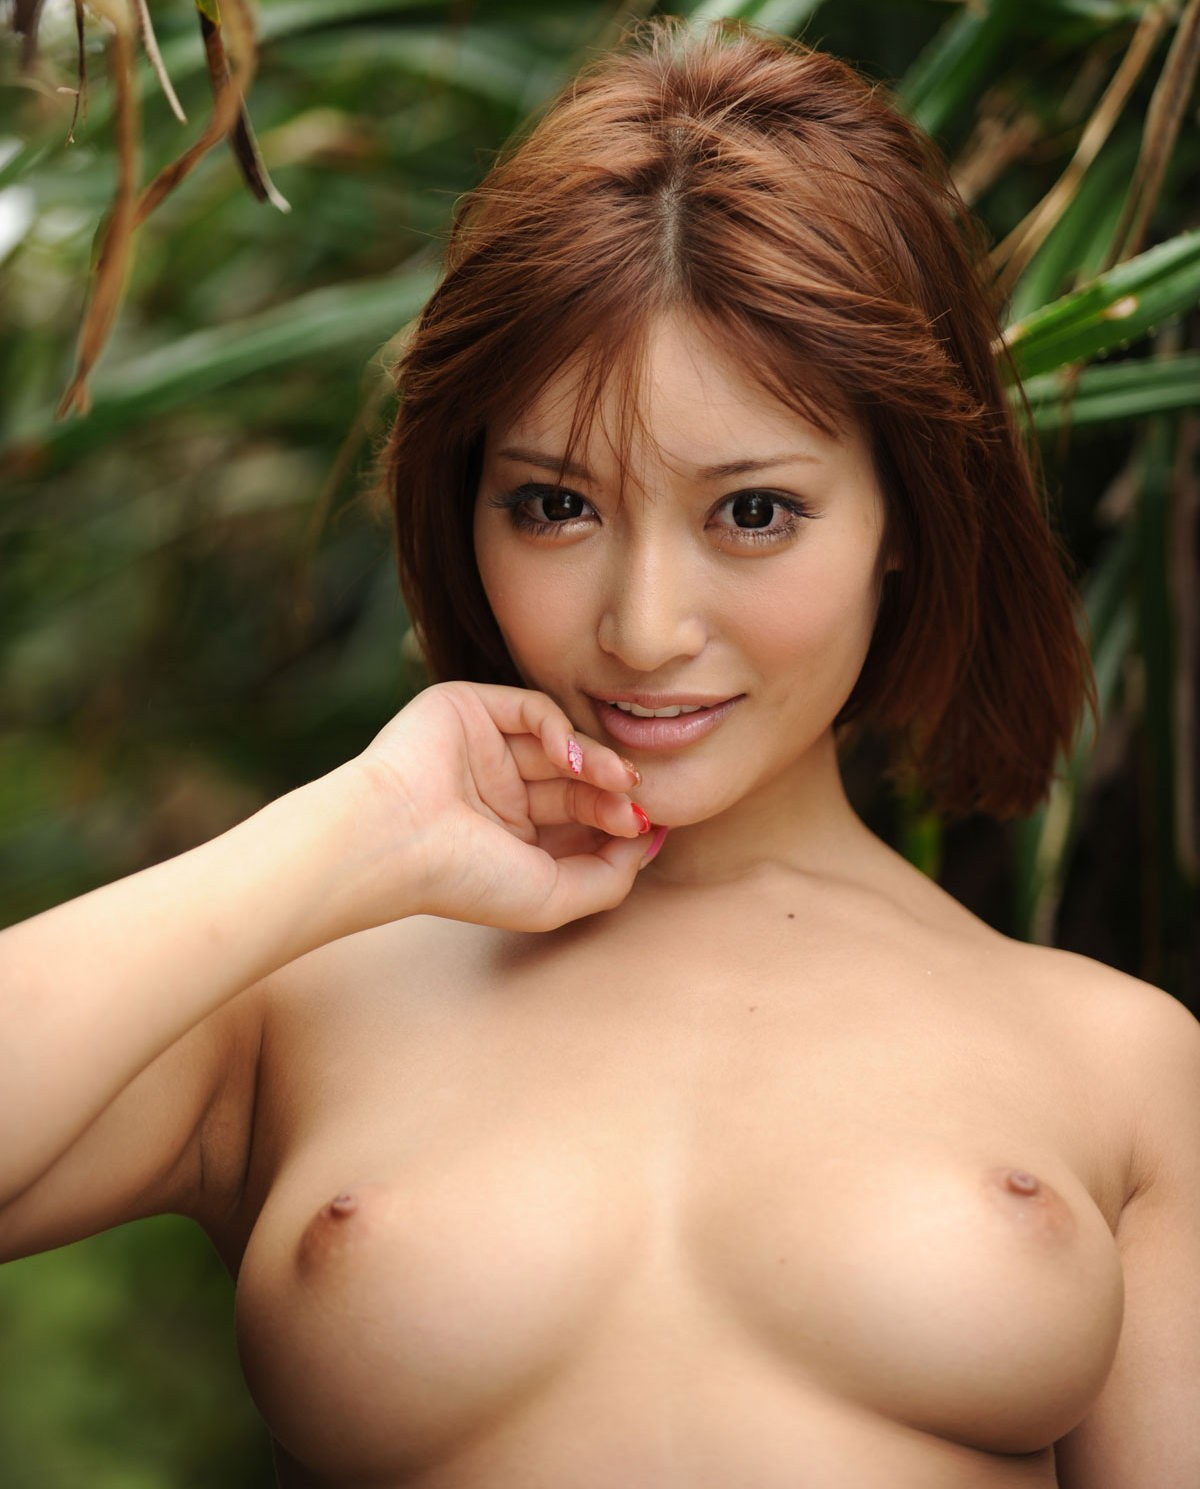 2Hot Busty Nude Asian Girls, Hot Nude Asian Girls 65-8763